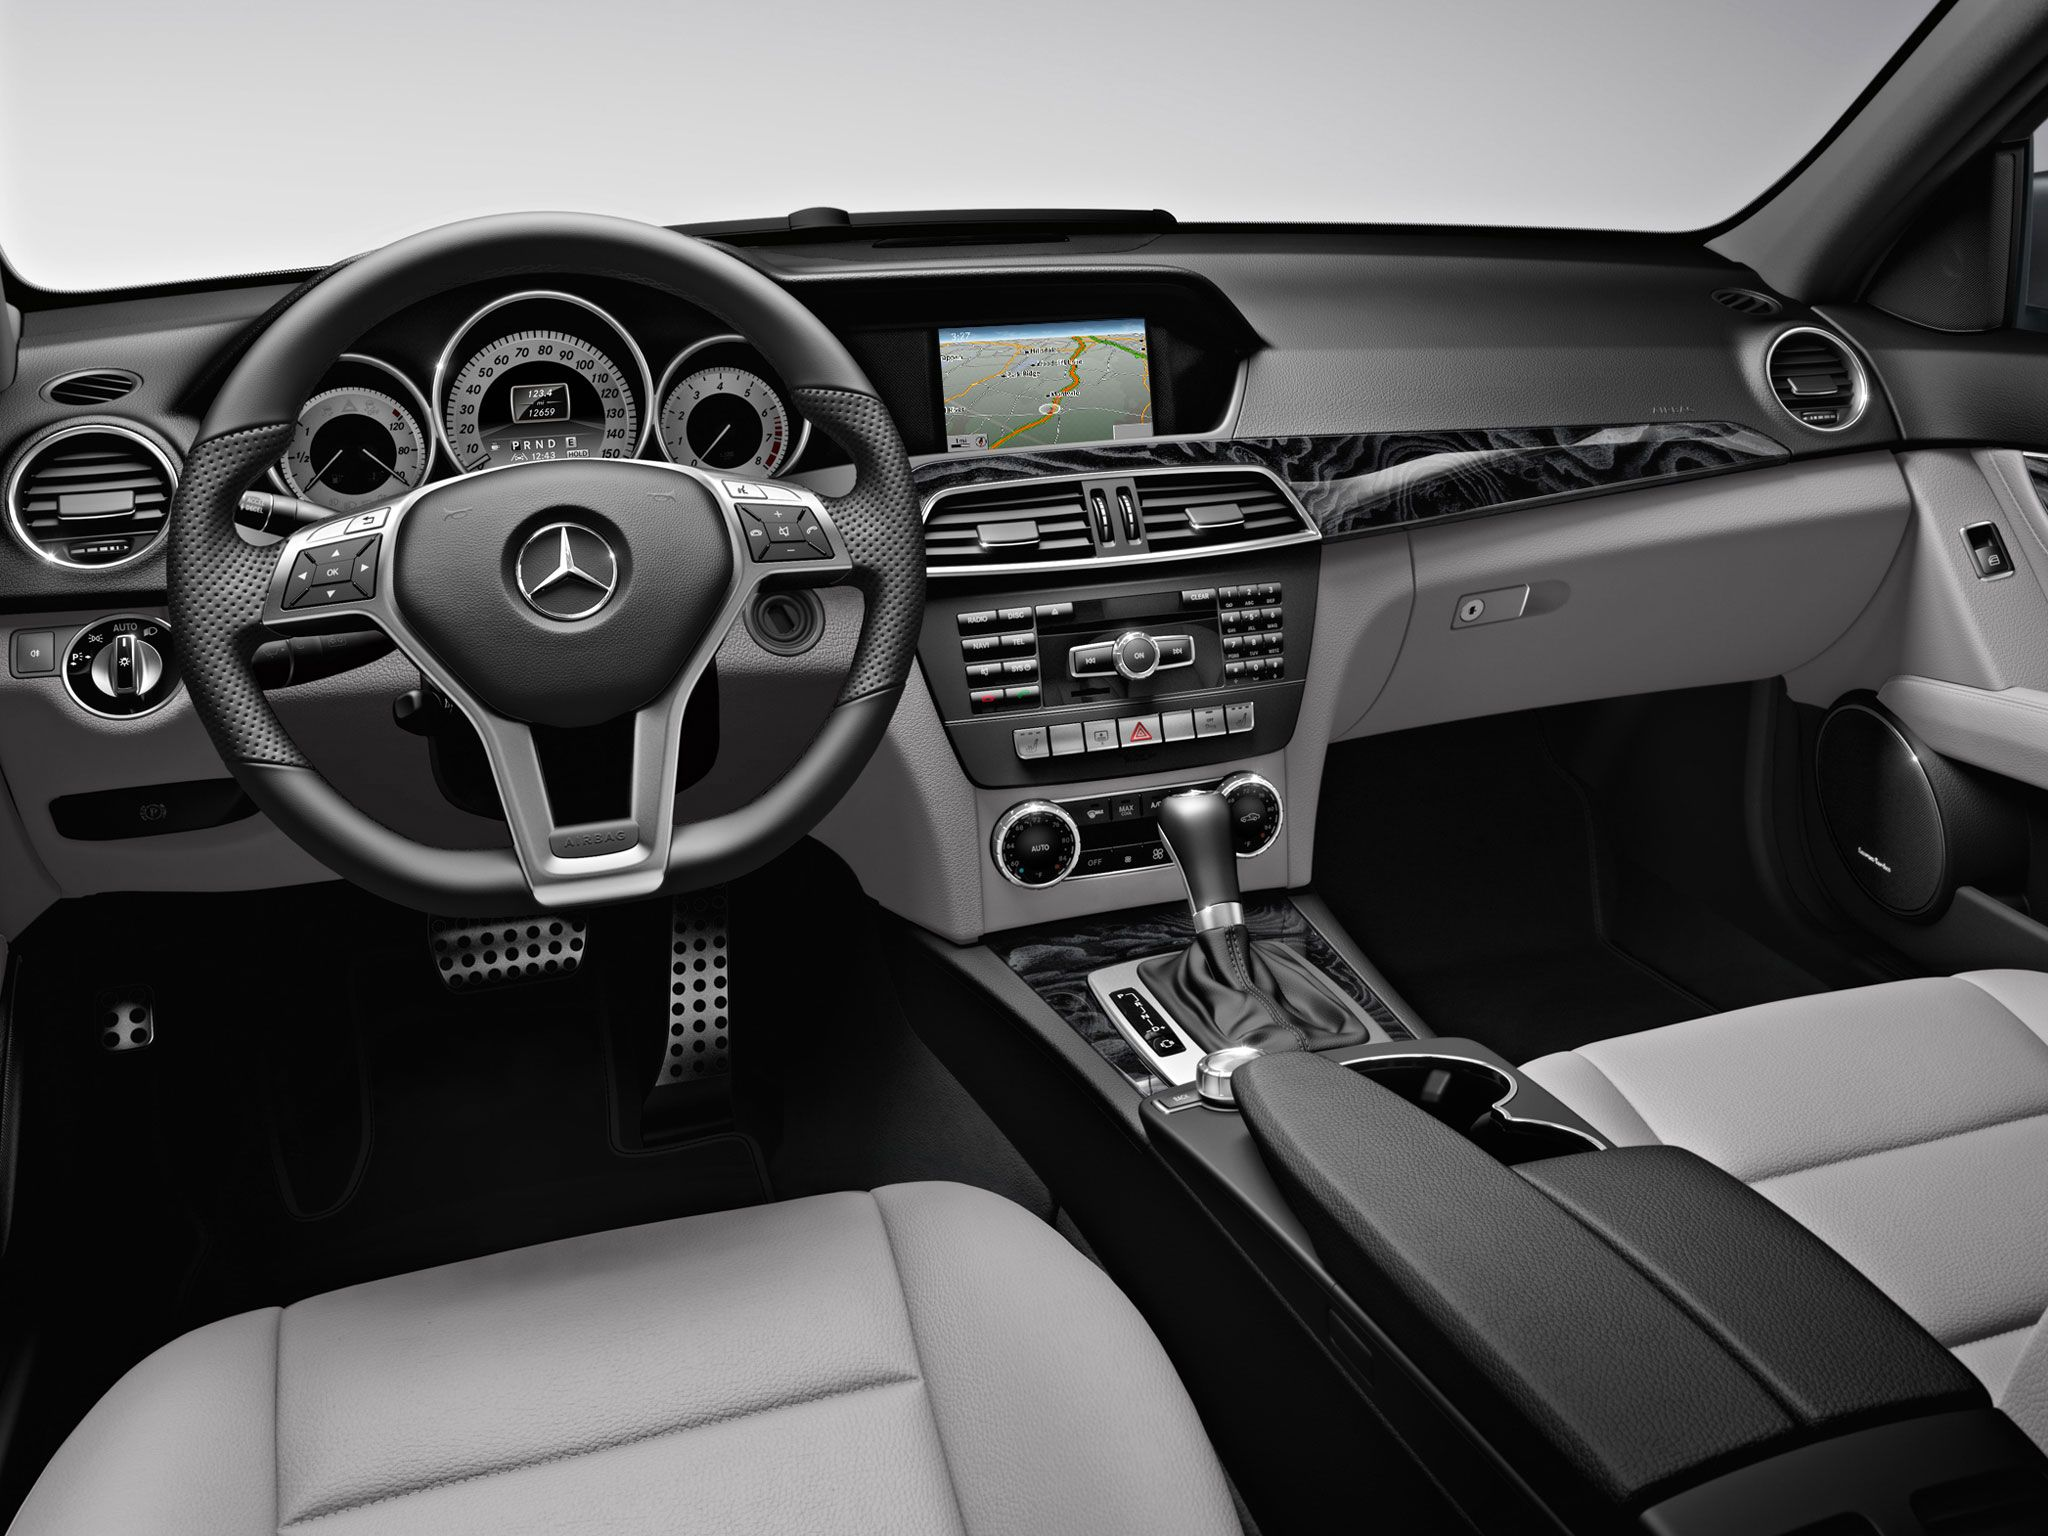 2013 mercedes c350 sedan interior in ash leather